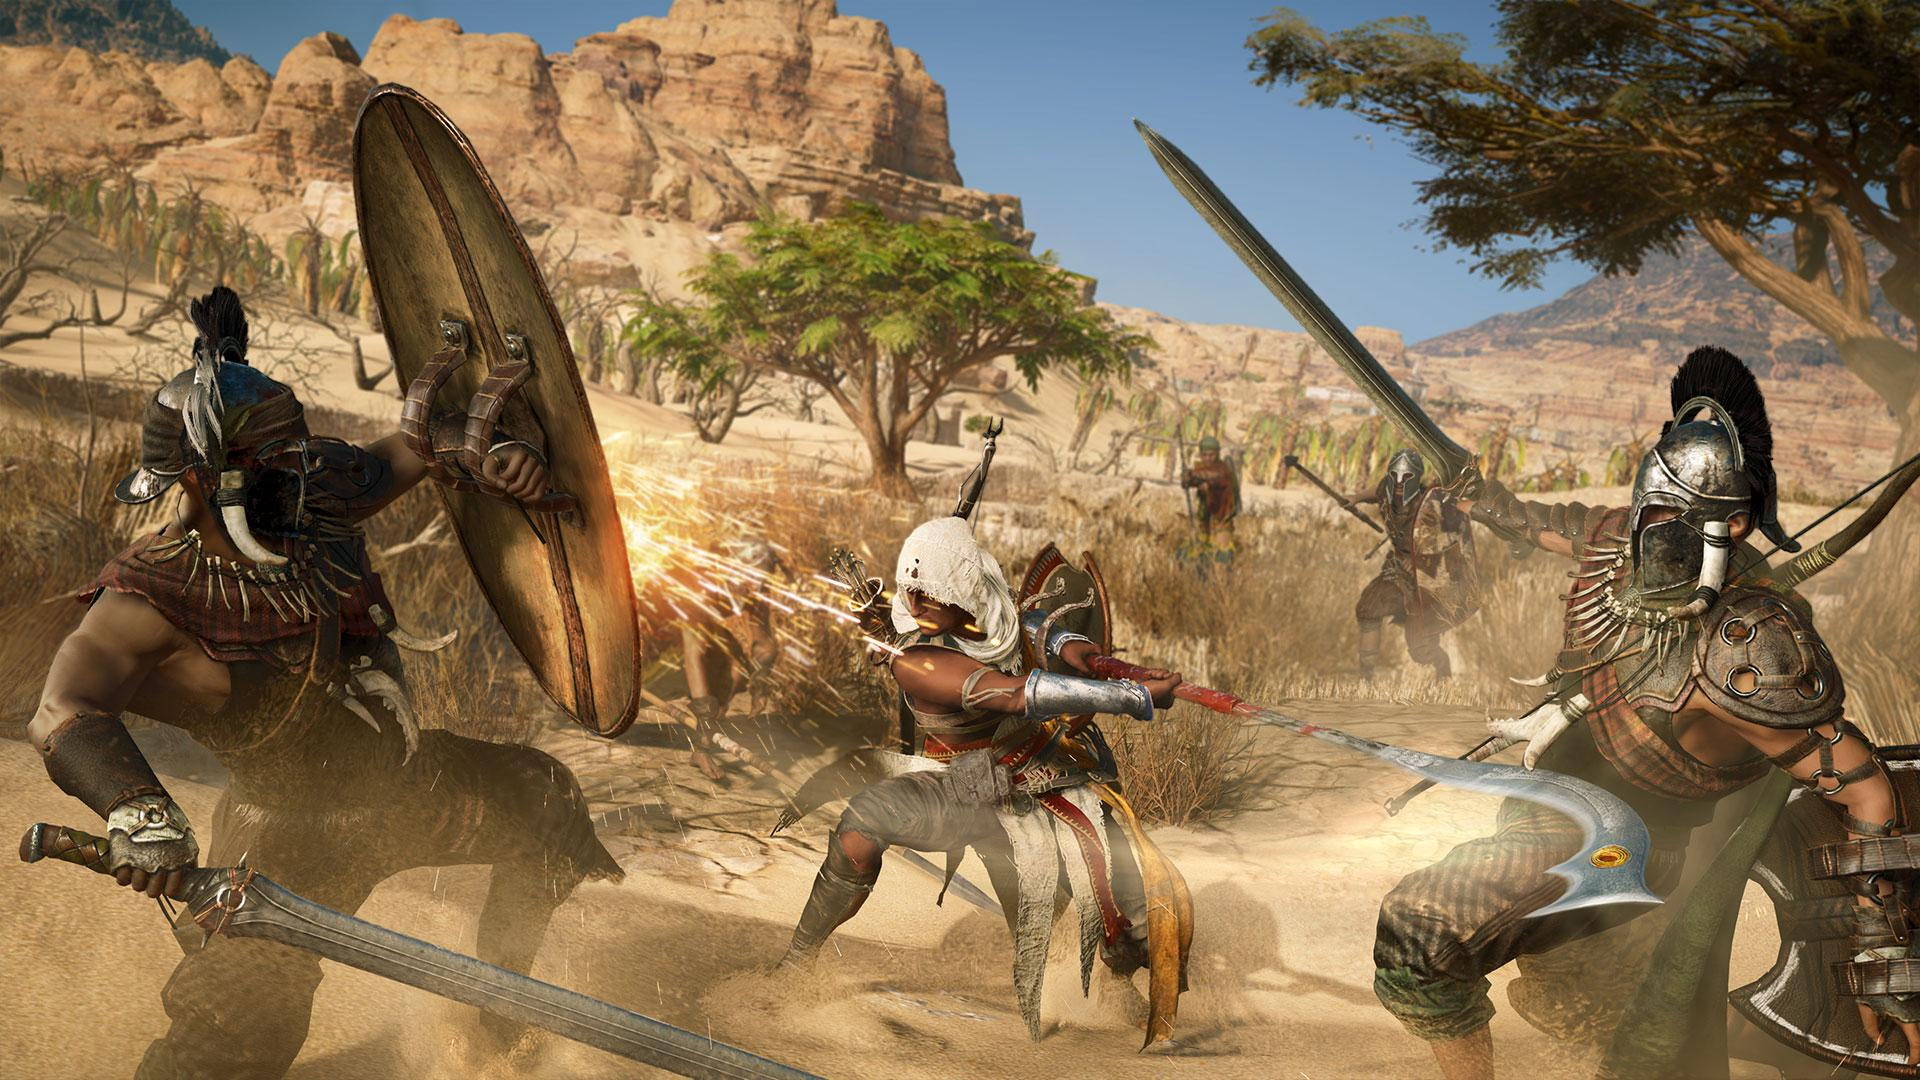 Ubisoft's Assassin's Creed Origins was shown running on an Xbox One X – and it looks spectacular